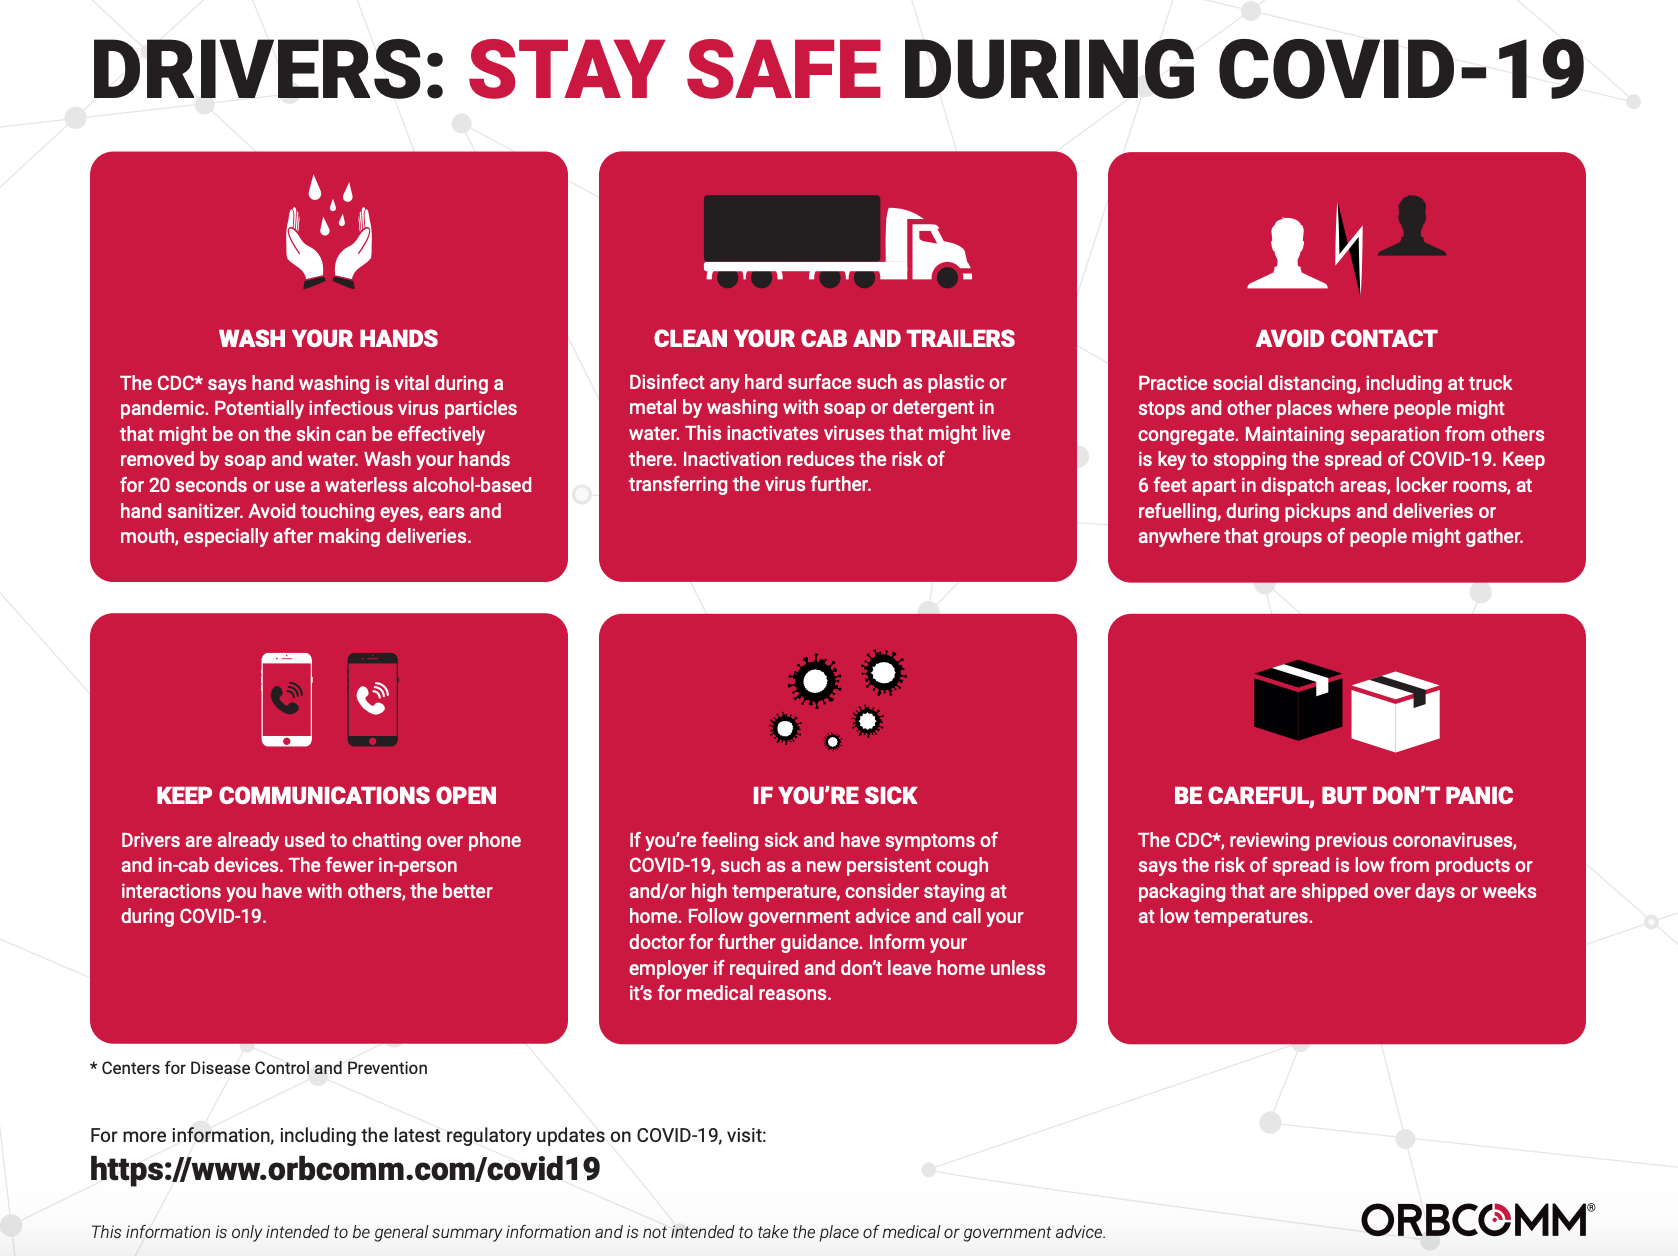 COVID19 Safety